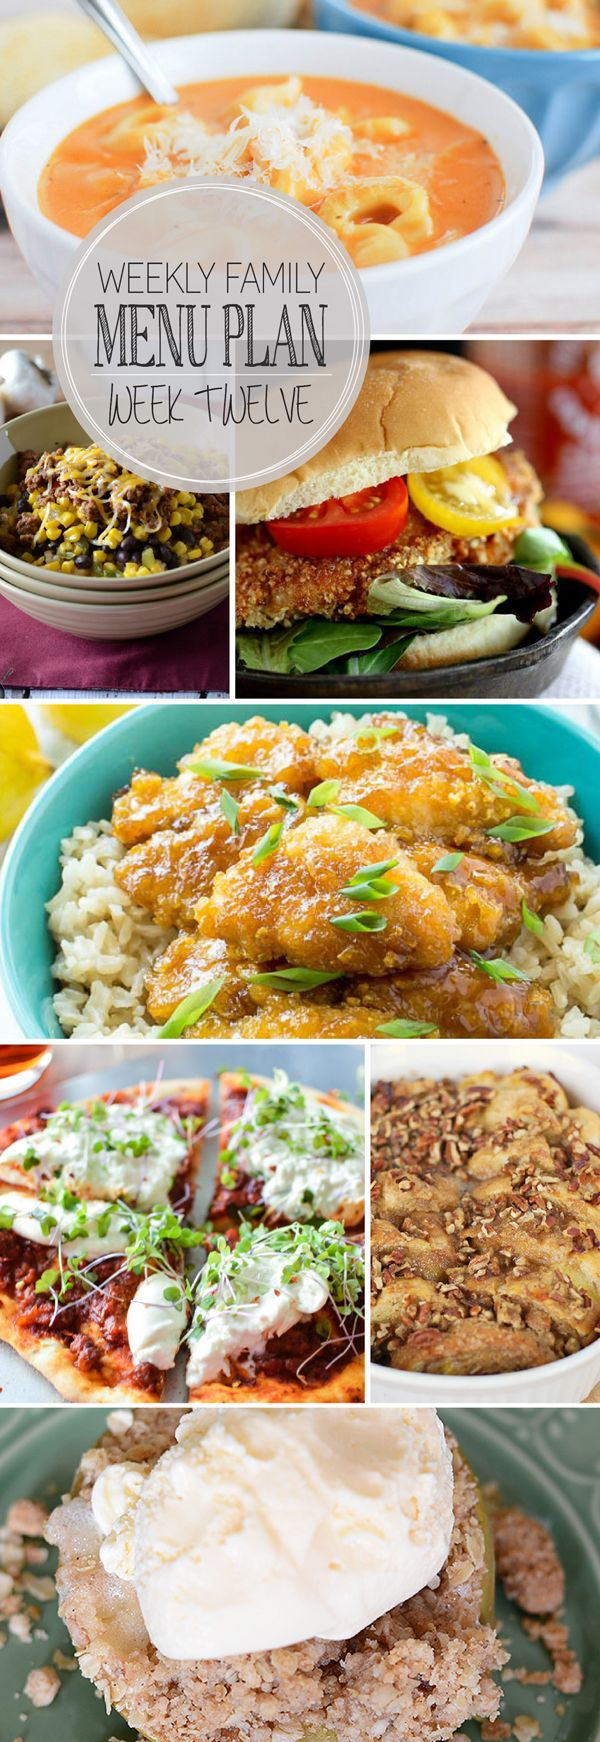 Weekly menu plan ideas! Check out all these yummy recipes